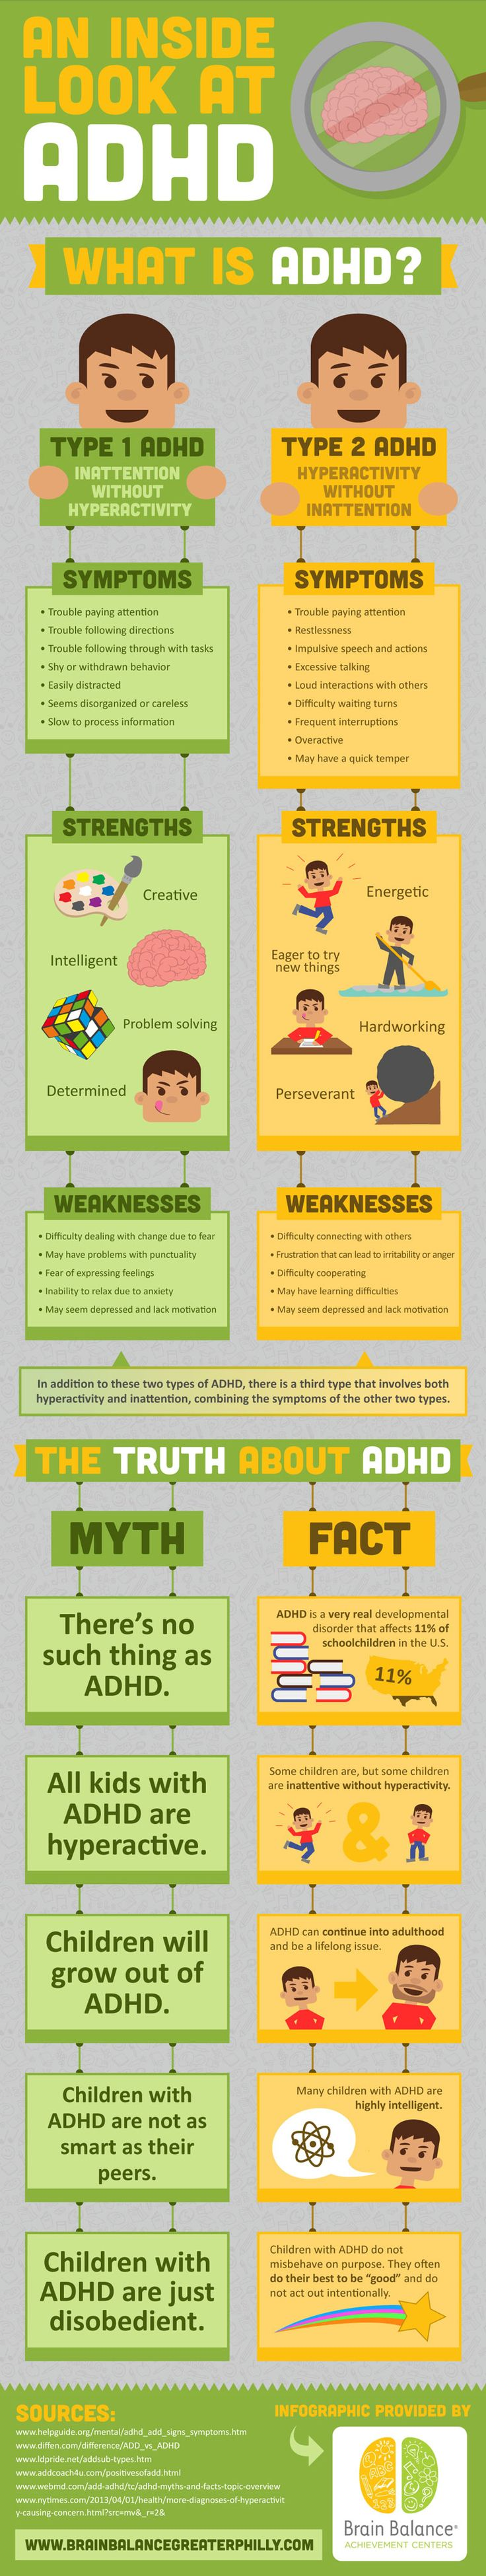 I am definitely the adhd green side that describes me.